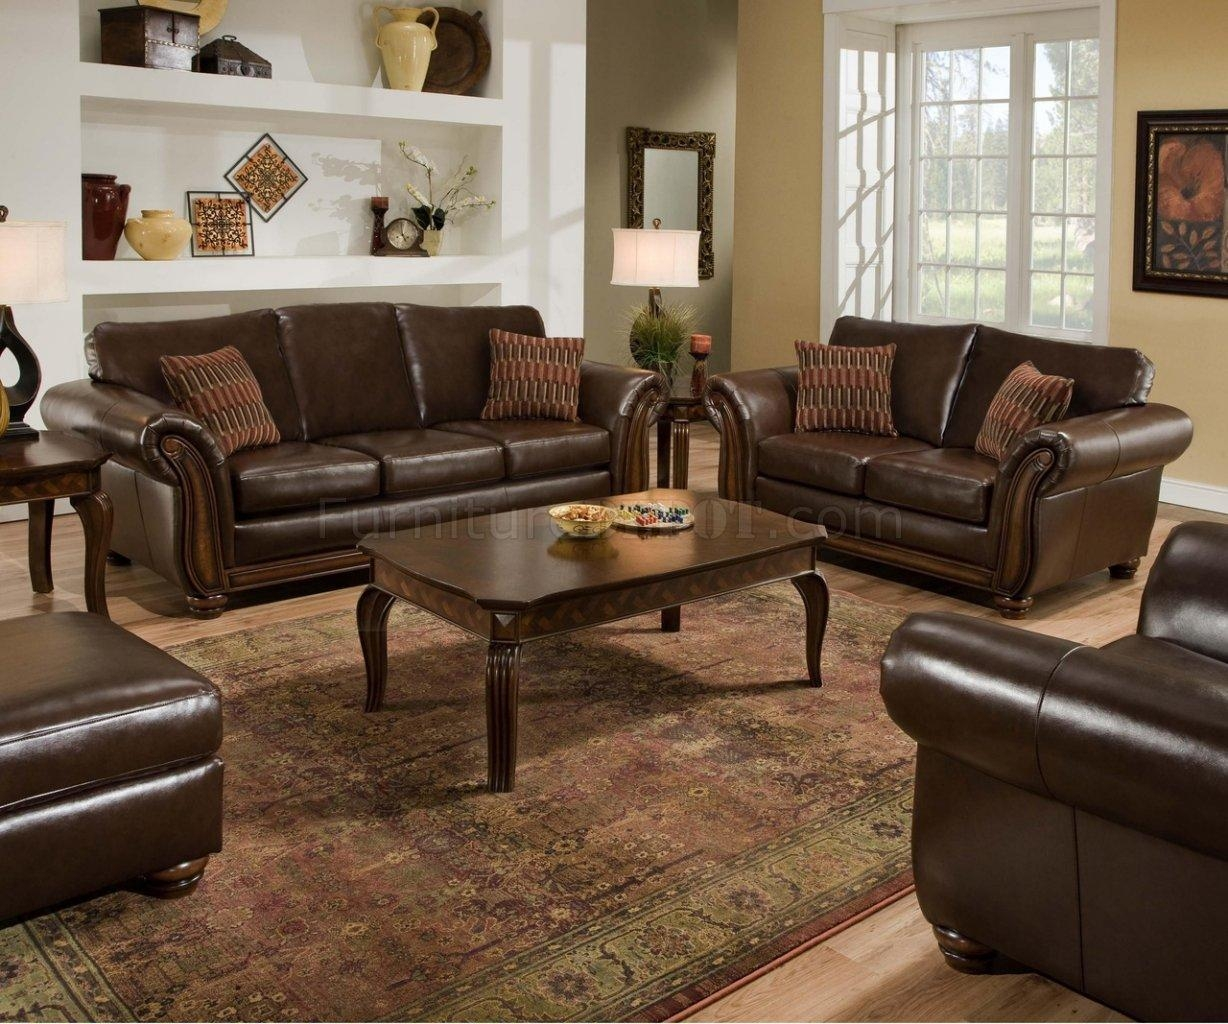 Simmons Bonded Leather Sofa With Ideas Inspiration 20546 | Kengire Pertaining To Simmons Bonded Leather Sofas (View 3 of 20)